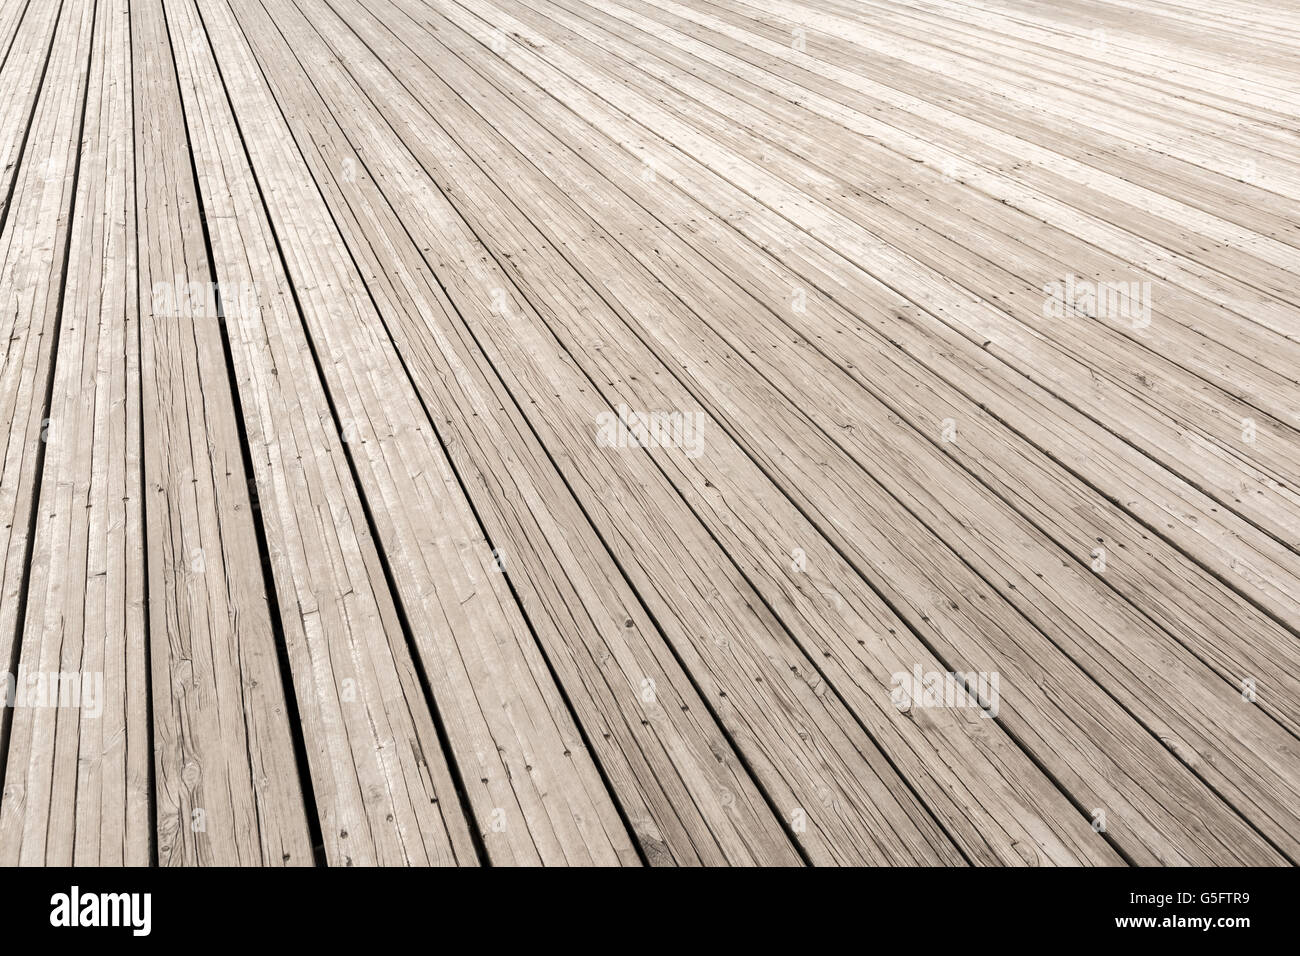 Stock Photo   wooden floor for Wood Background Texture perspective. wooden floor for Wood Background Texture perspective Stock Photo